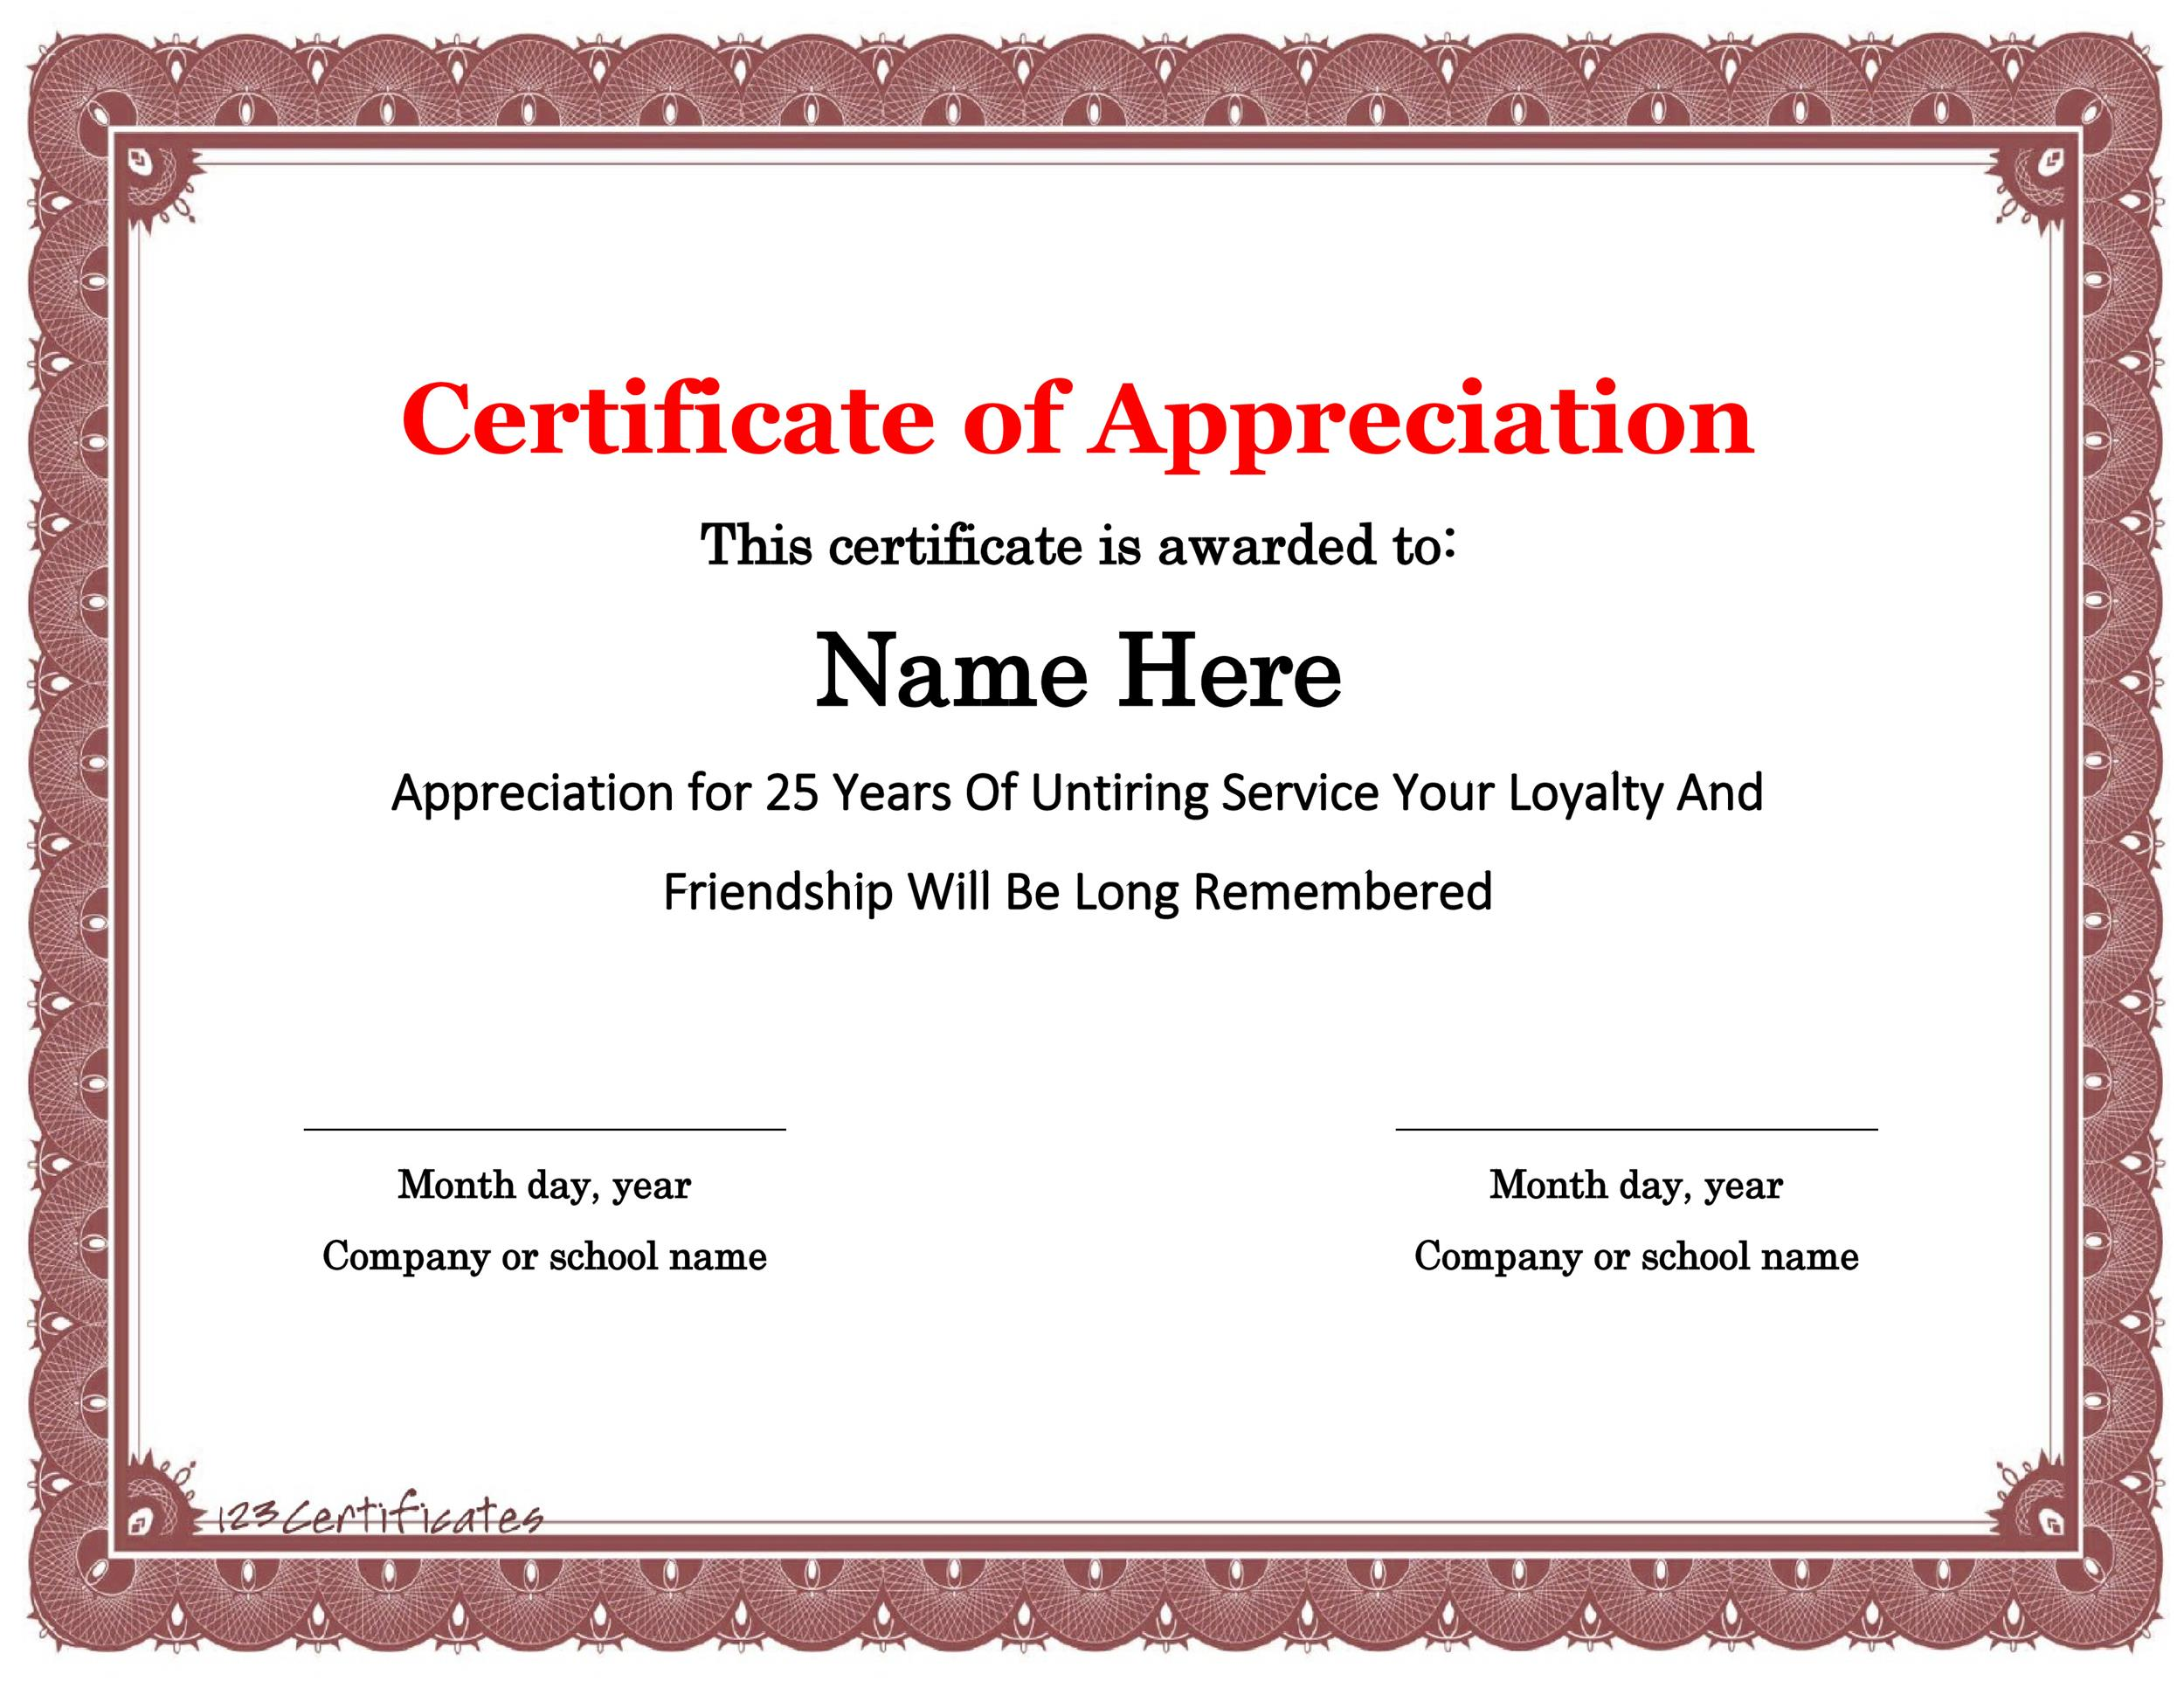 Lovely Printable Certificate Of Appreciation 20 Intended For Certificate Of Appreciation Template For Word